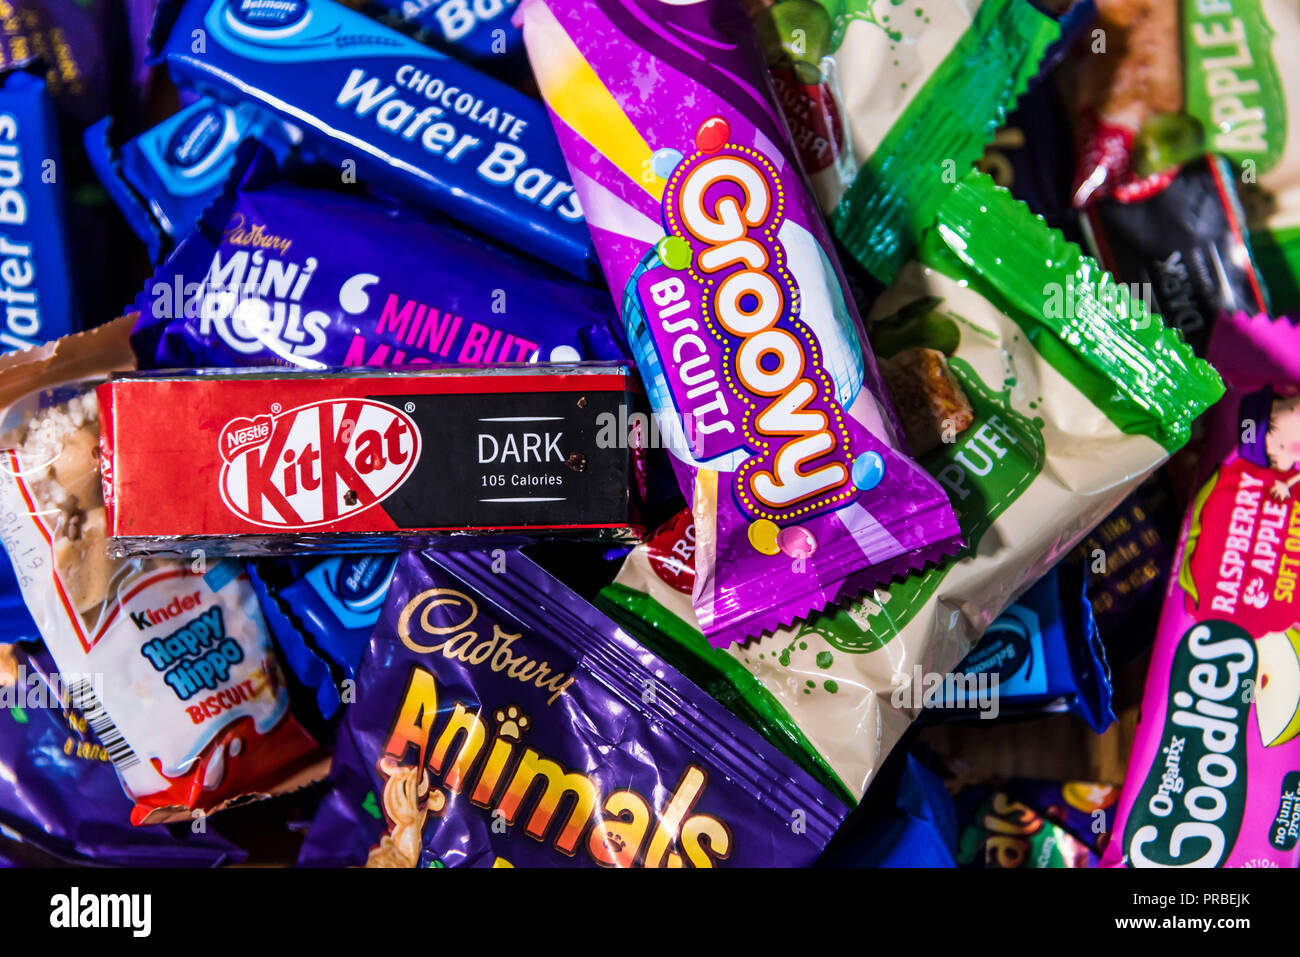 Assorted candy chocolate bars in brightly coloured wrappers. - Stock Image